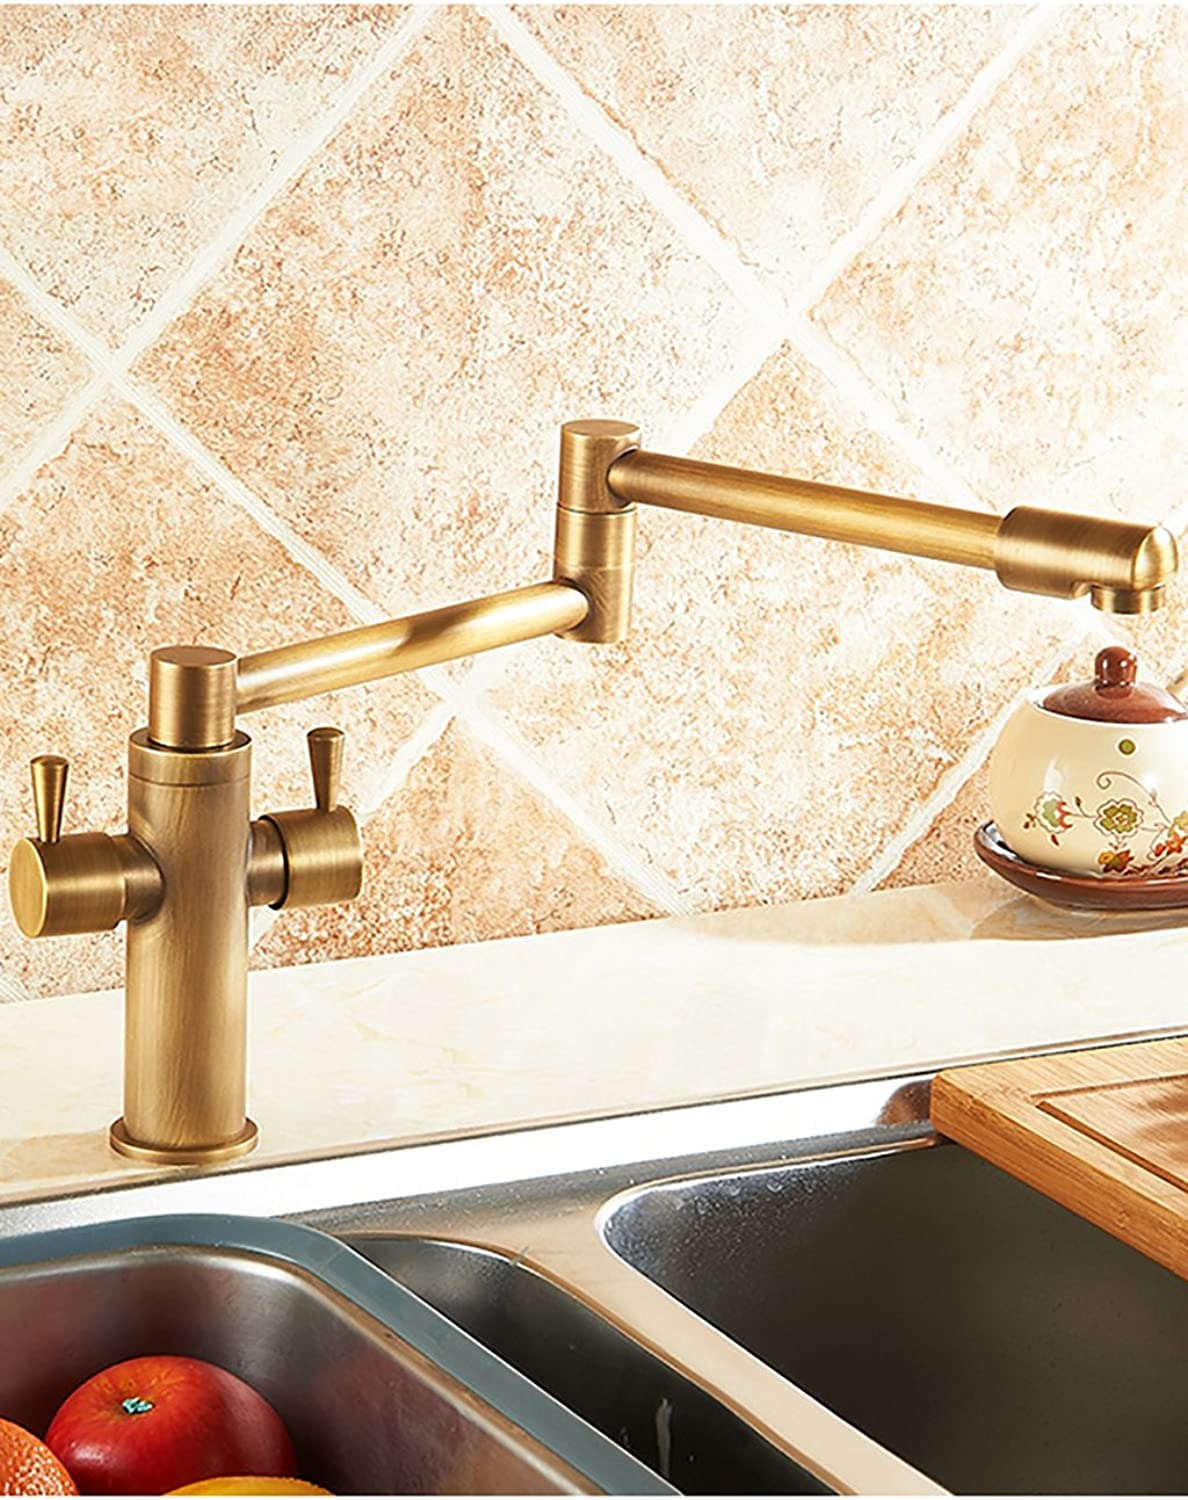 Sun LL European Style Retro Household Kitchen Faucet Copper Hot And Cold Foldable Can Be redated Single Head Vegetable Pots